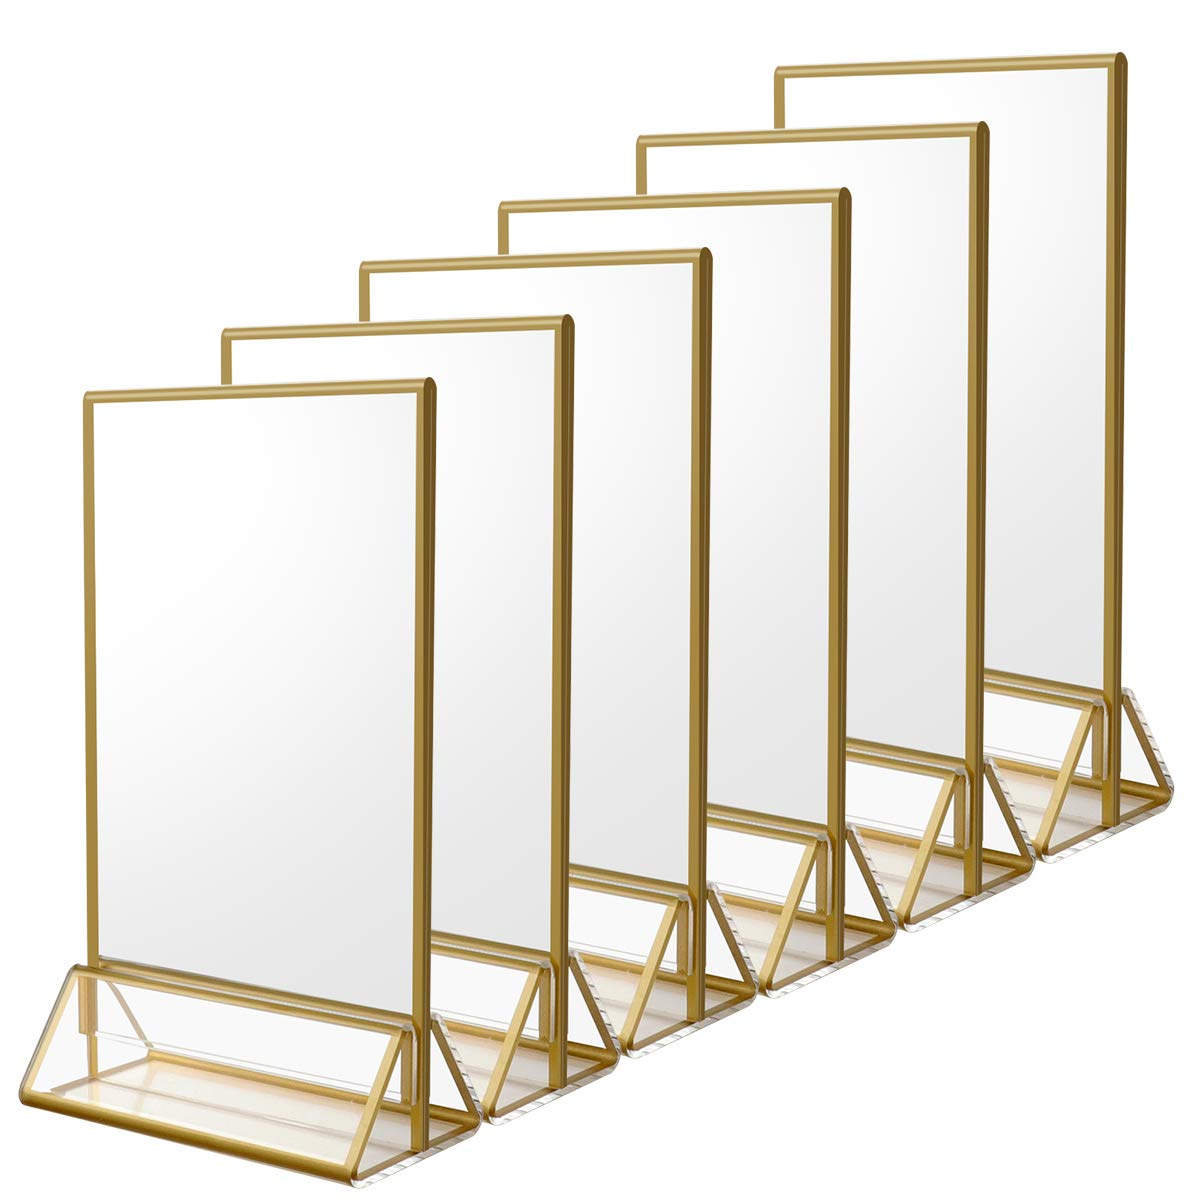 Acrylic Sign Holder with Gold Borders and Vertical Stand, Double Sided Table Menu Holders